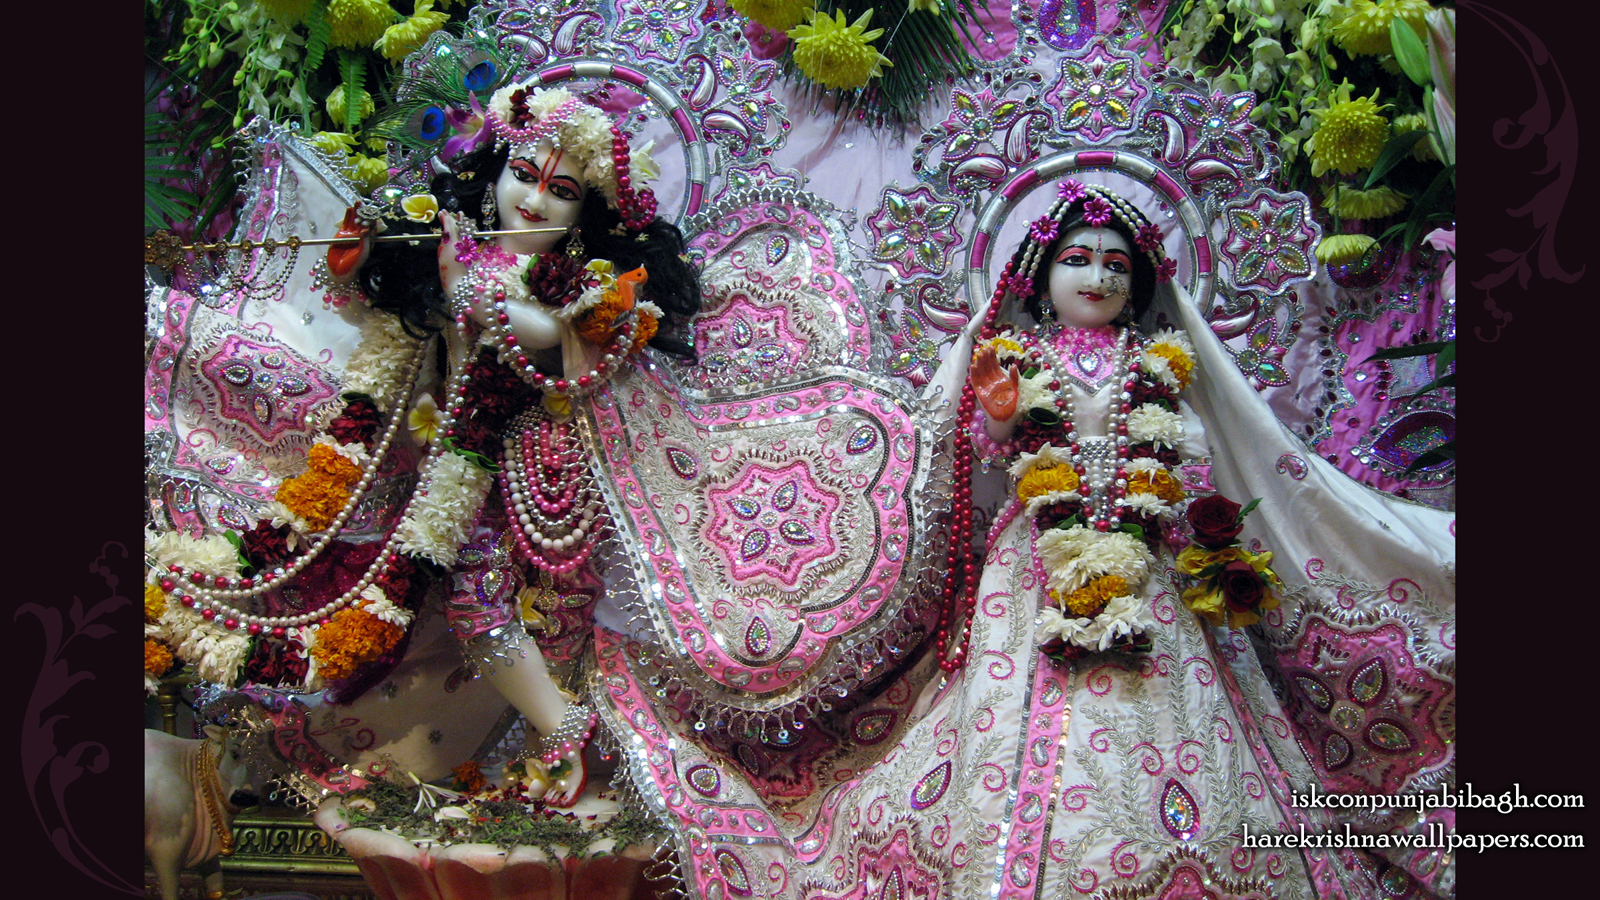 Sri Sri Radha Radhikaraman Wallpaper (002) Size 1600x900 Download